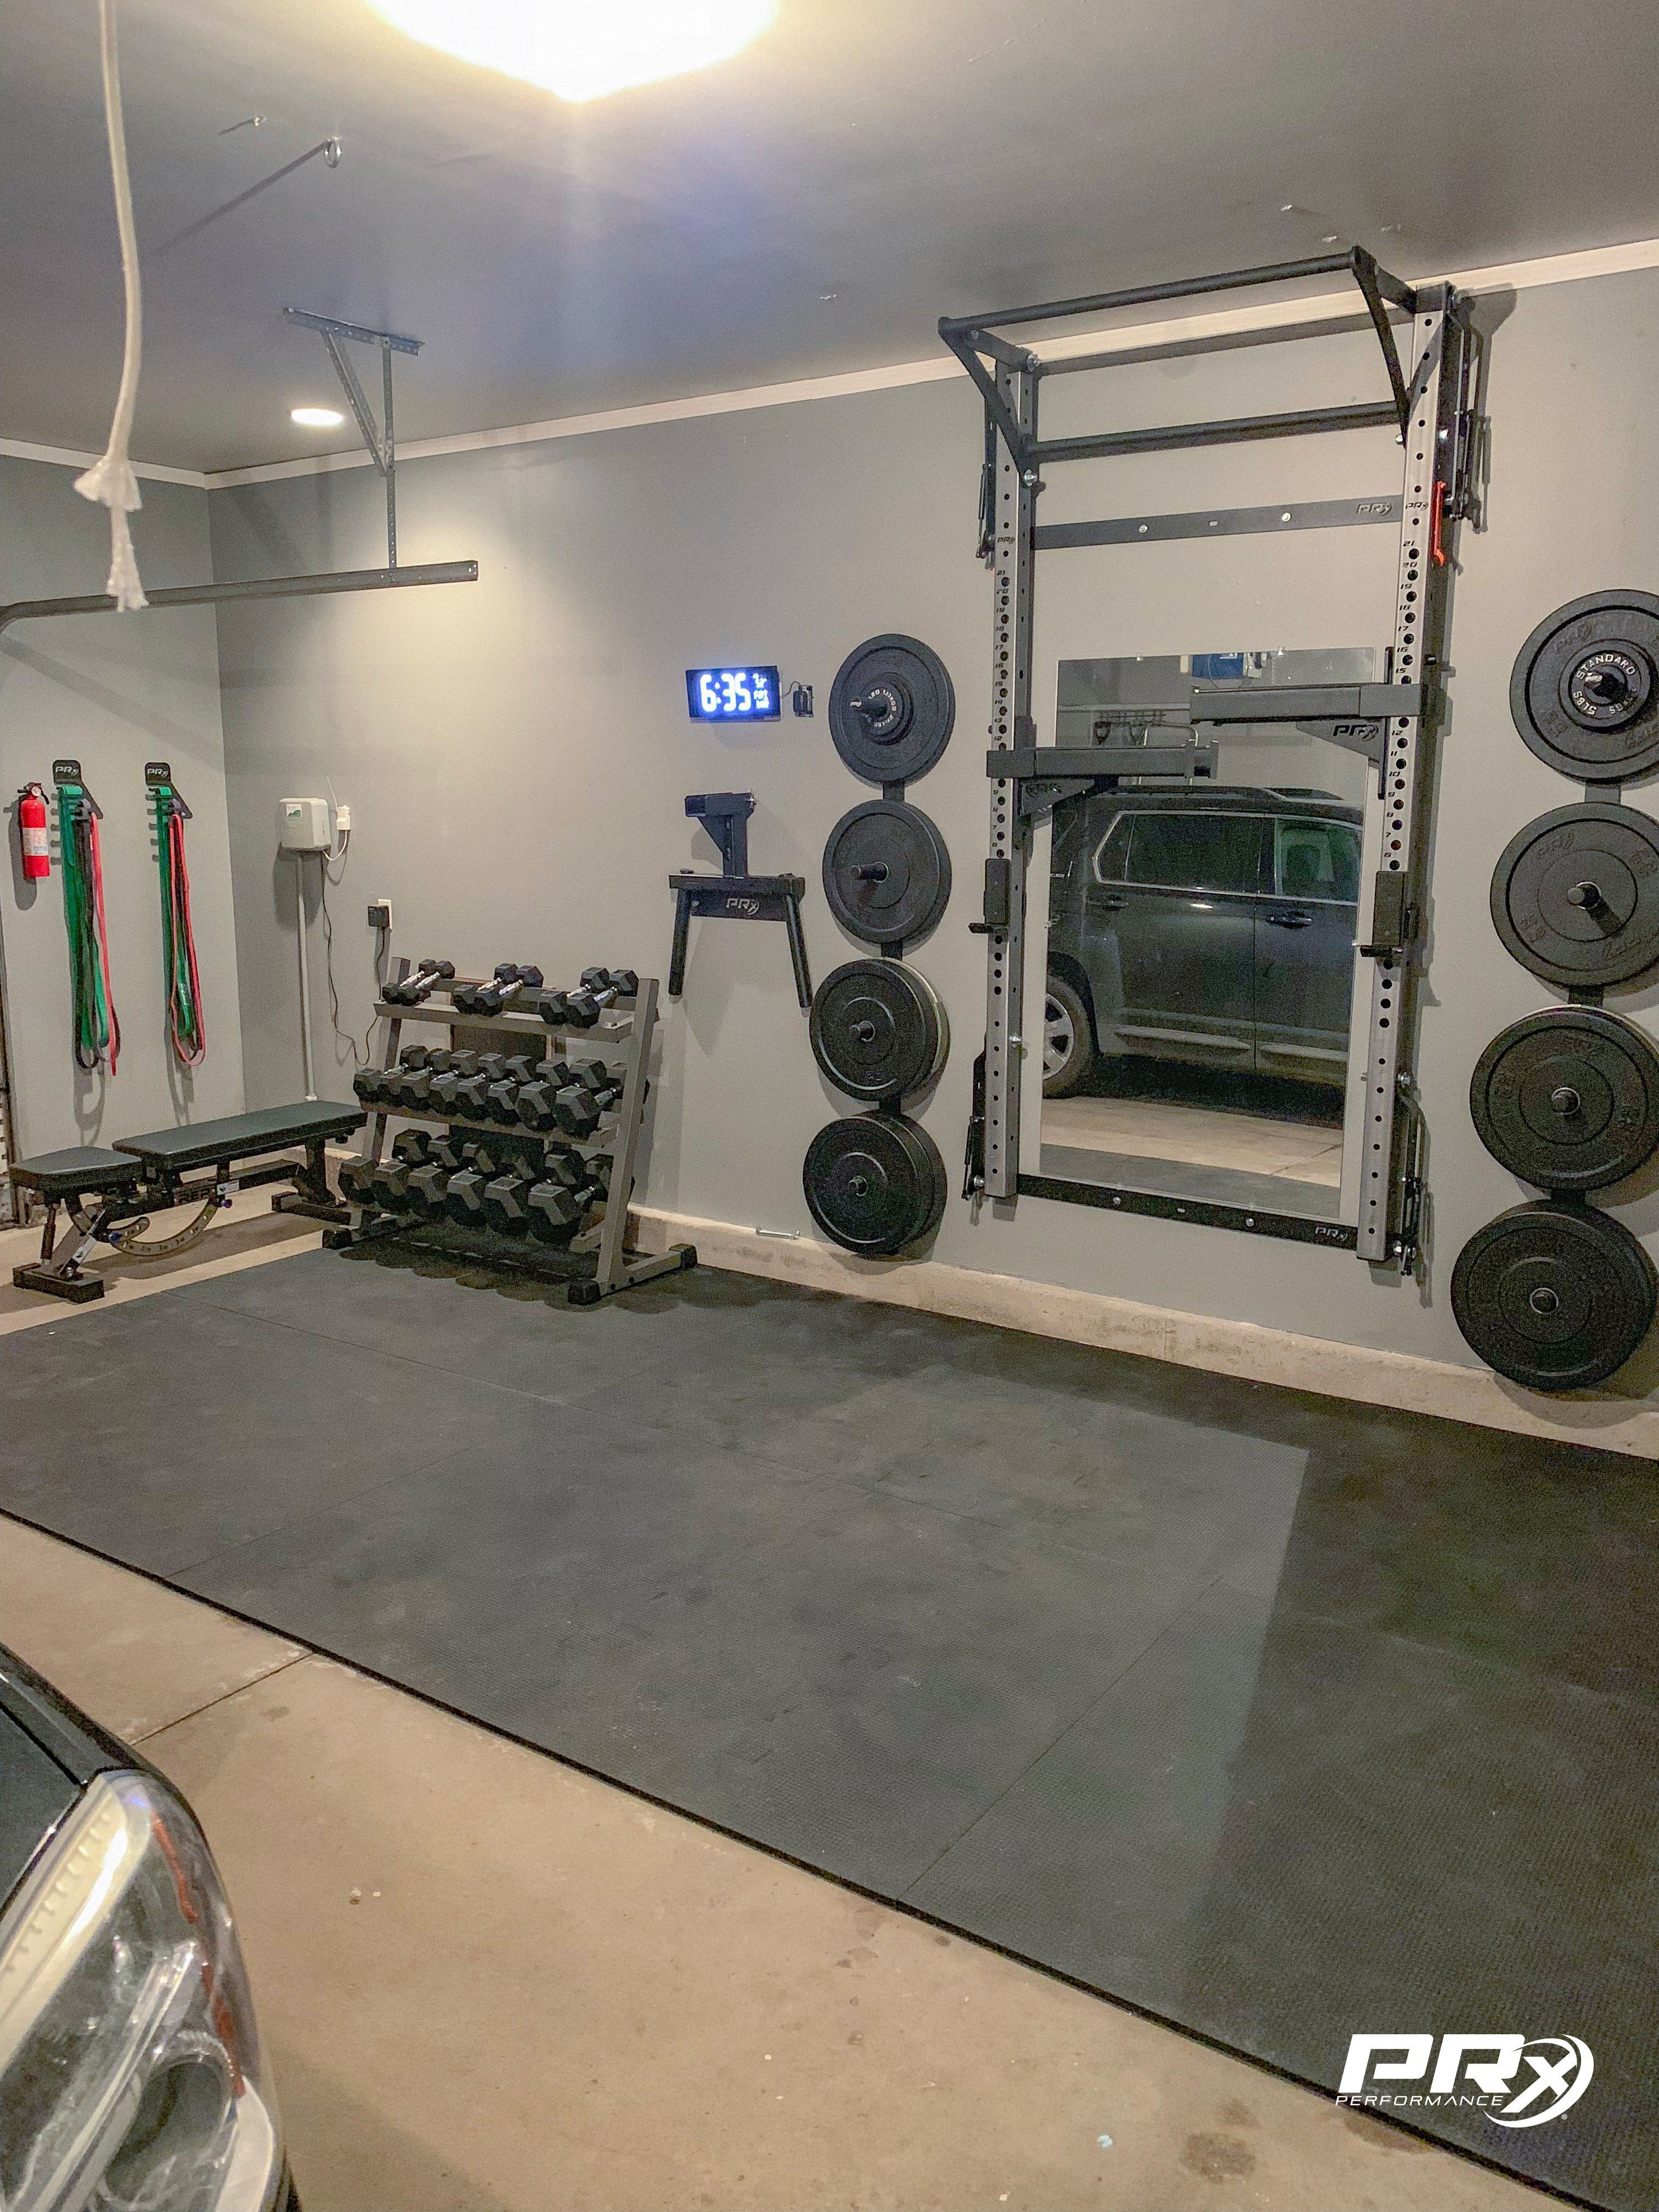 Workout Done Check Now Just Waiting For More Action Tomorrow Cardiofunny Diy Home Gym At Home Gym Home Gym Garage